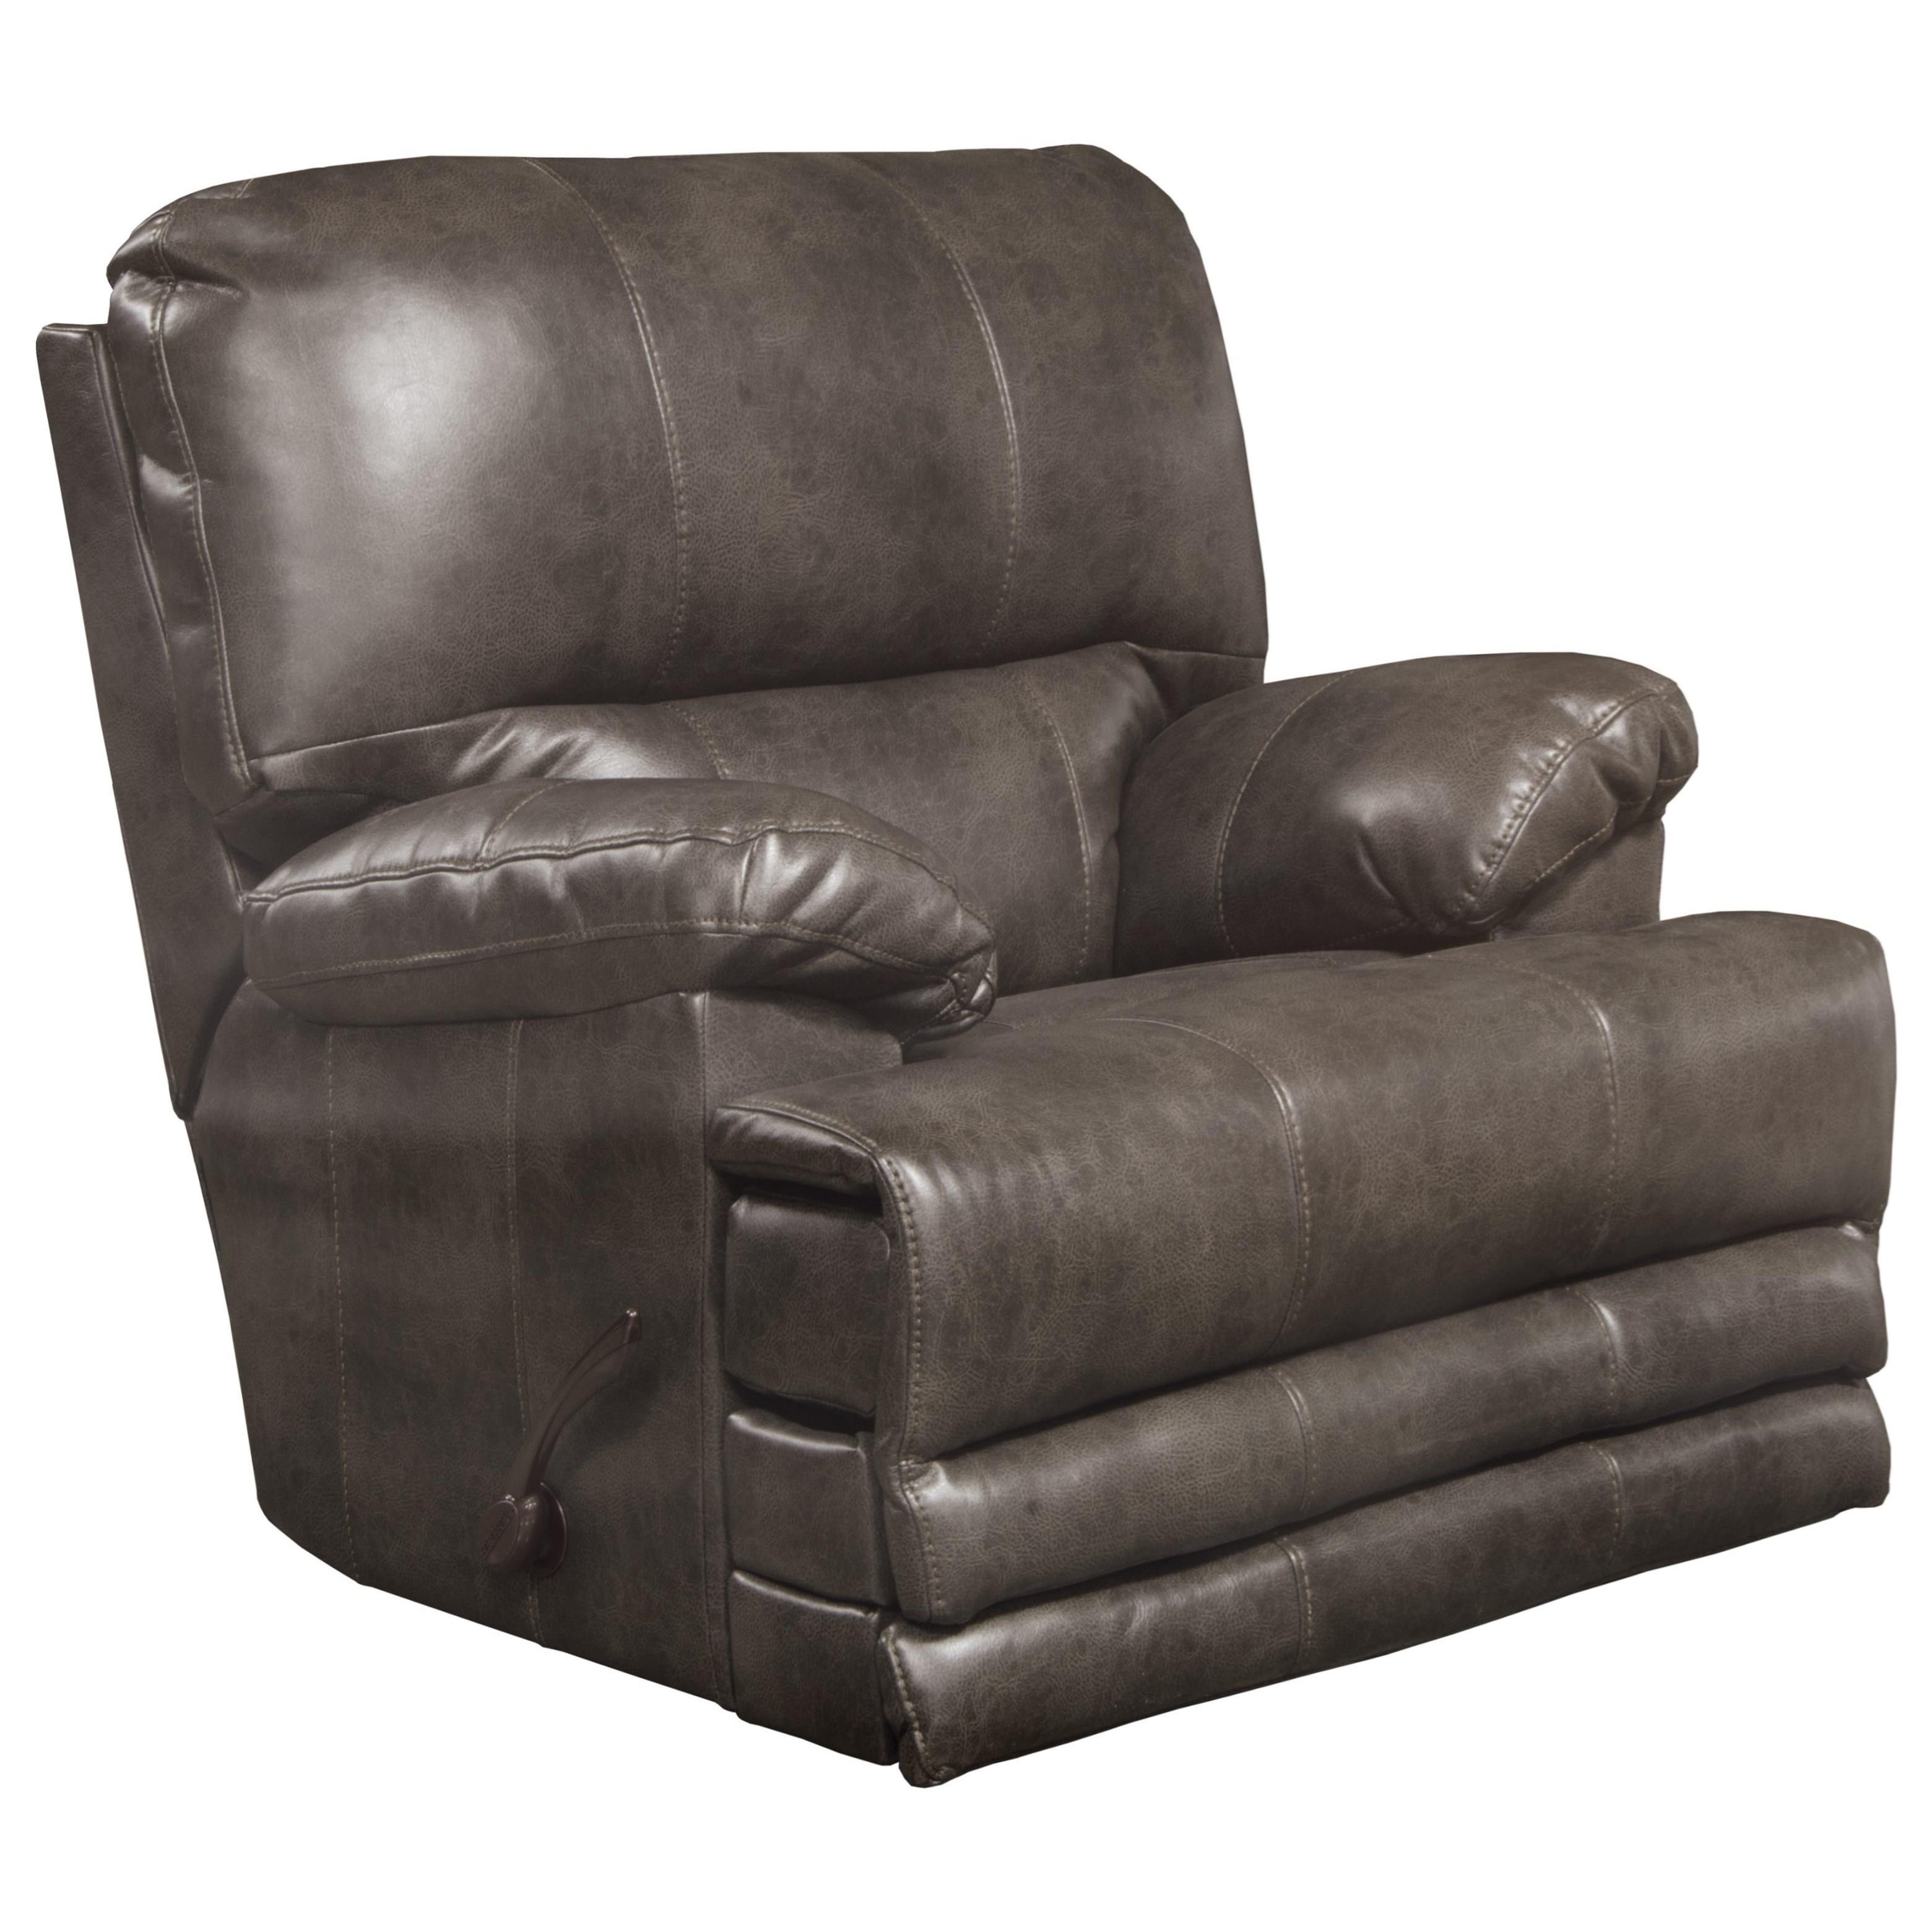 Catnapper Austin Casual Power Lay Flat Recliner With